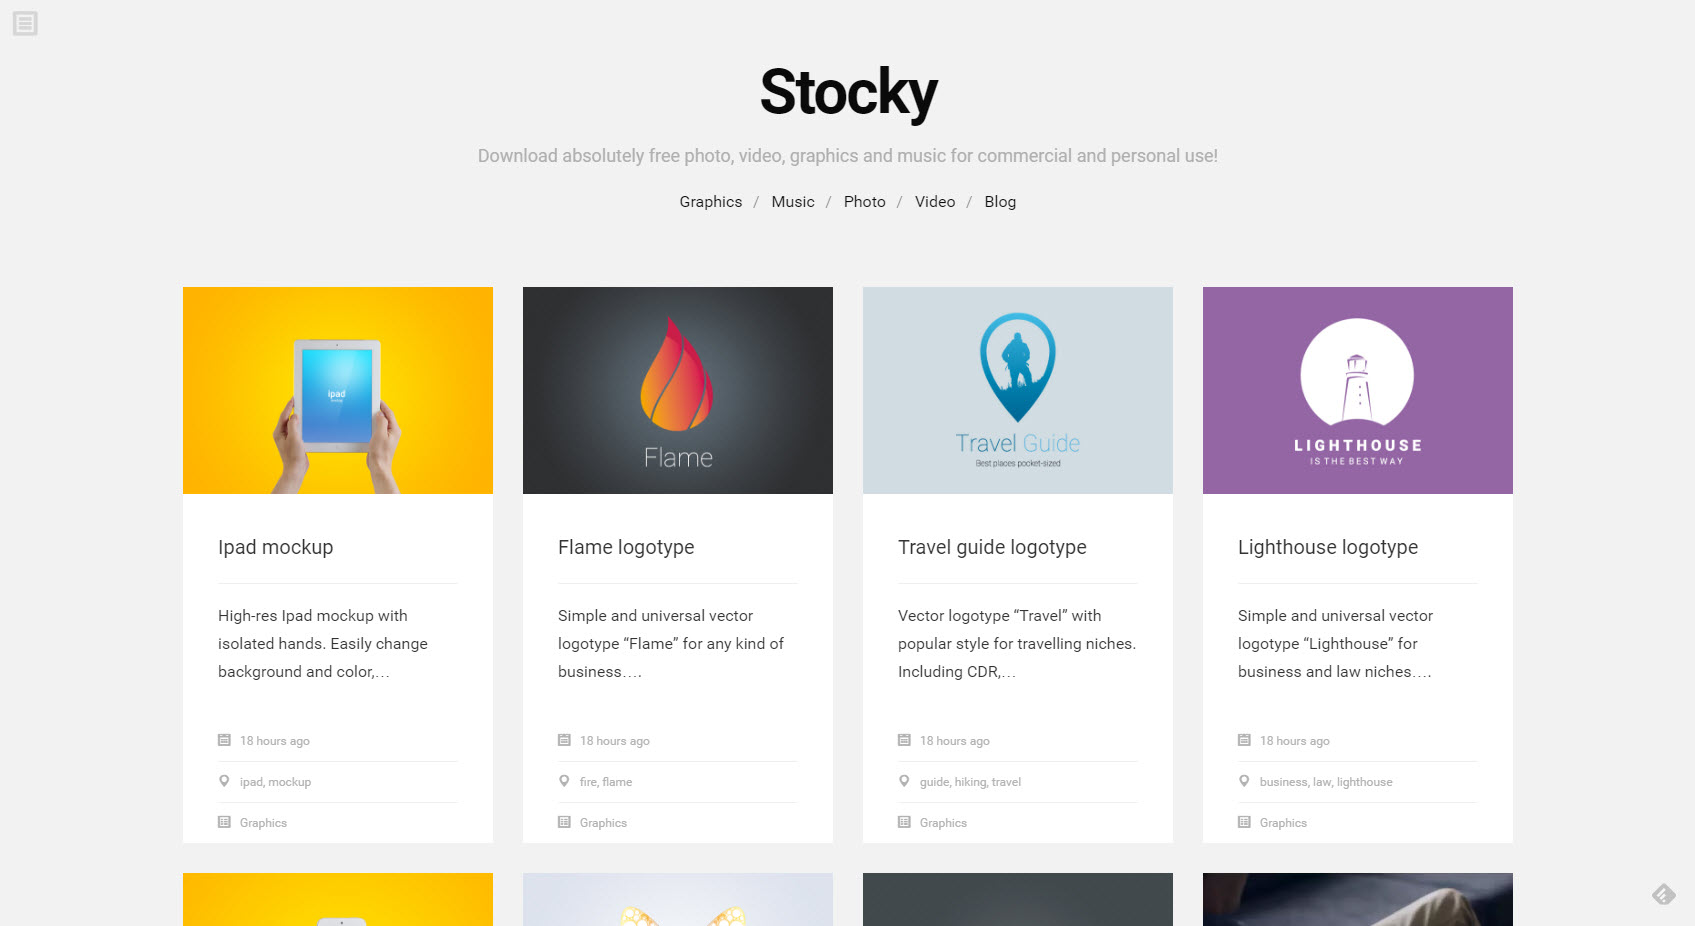 Stocky.pro: the Rather Plain, but Appropriate Landing Page